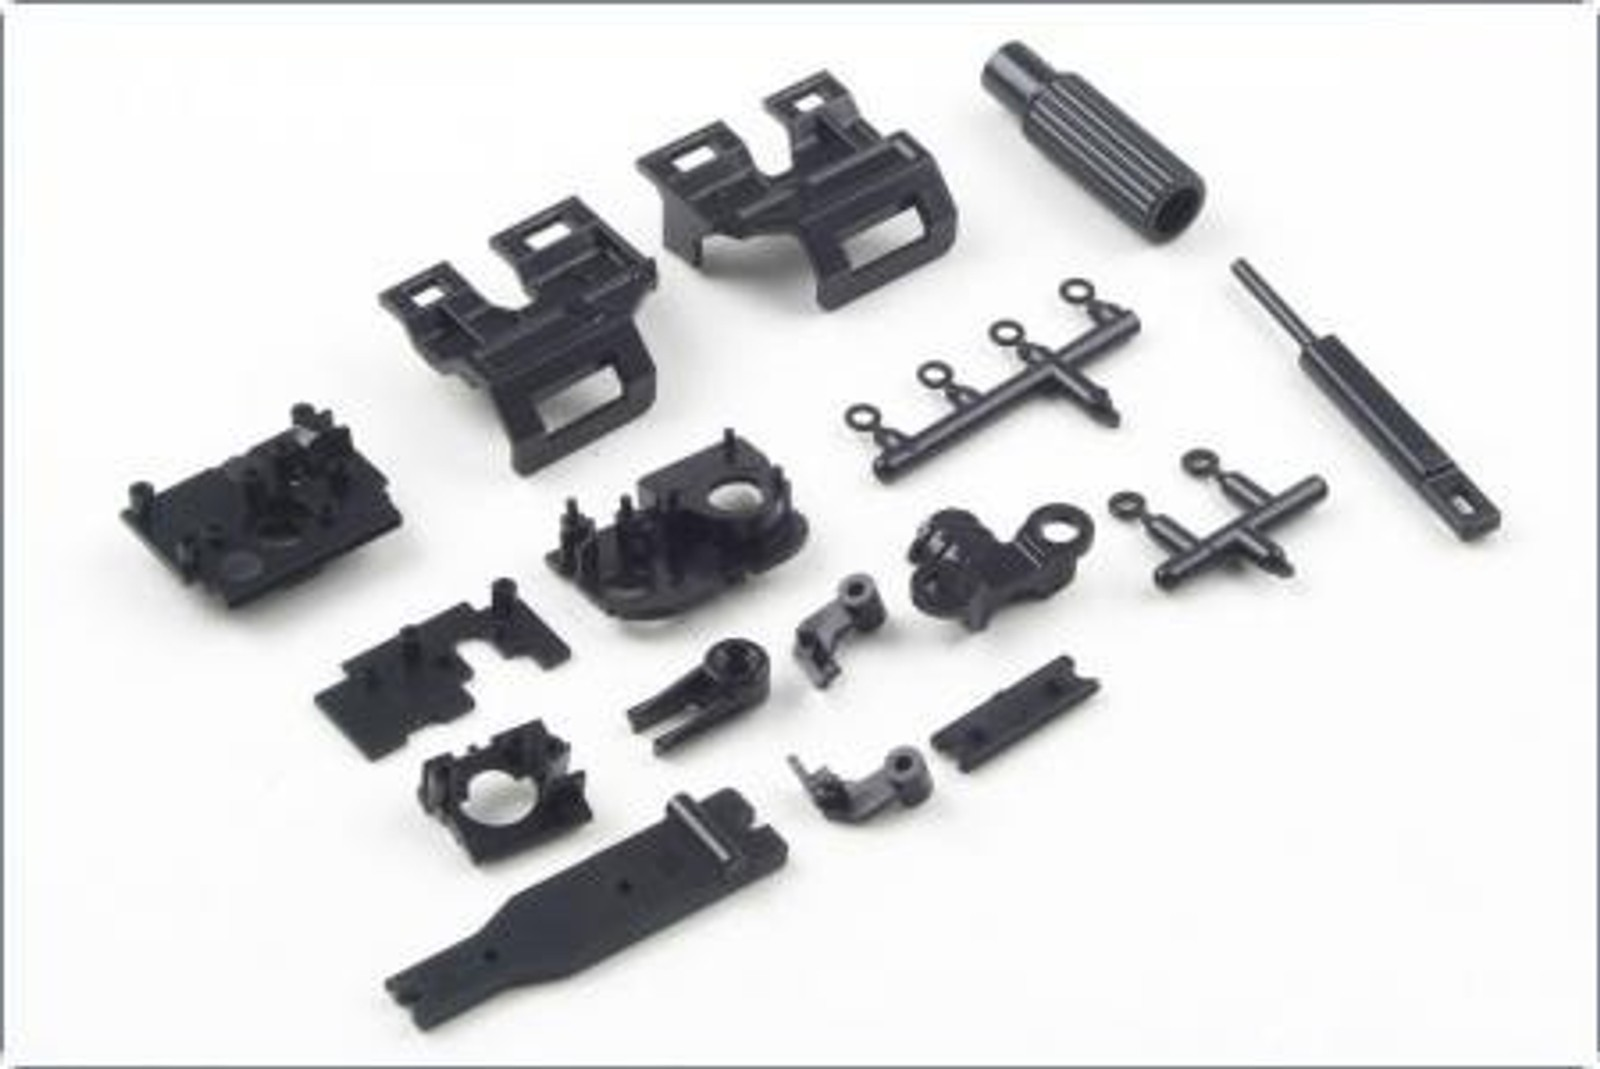 MZ402 / KY / MZ402 / Chassis Kleinteile Set / Chassis Small Parts Set MR-03 - Bild 1